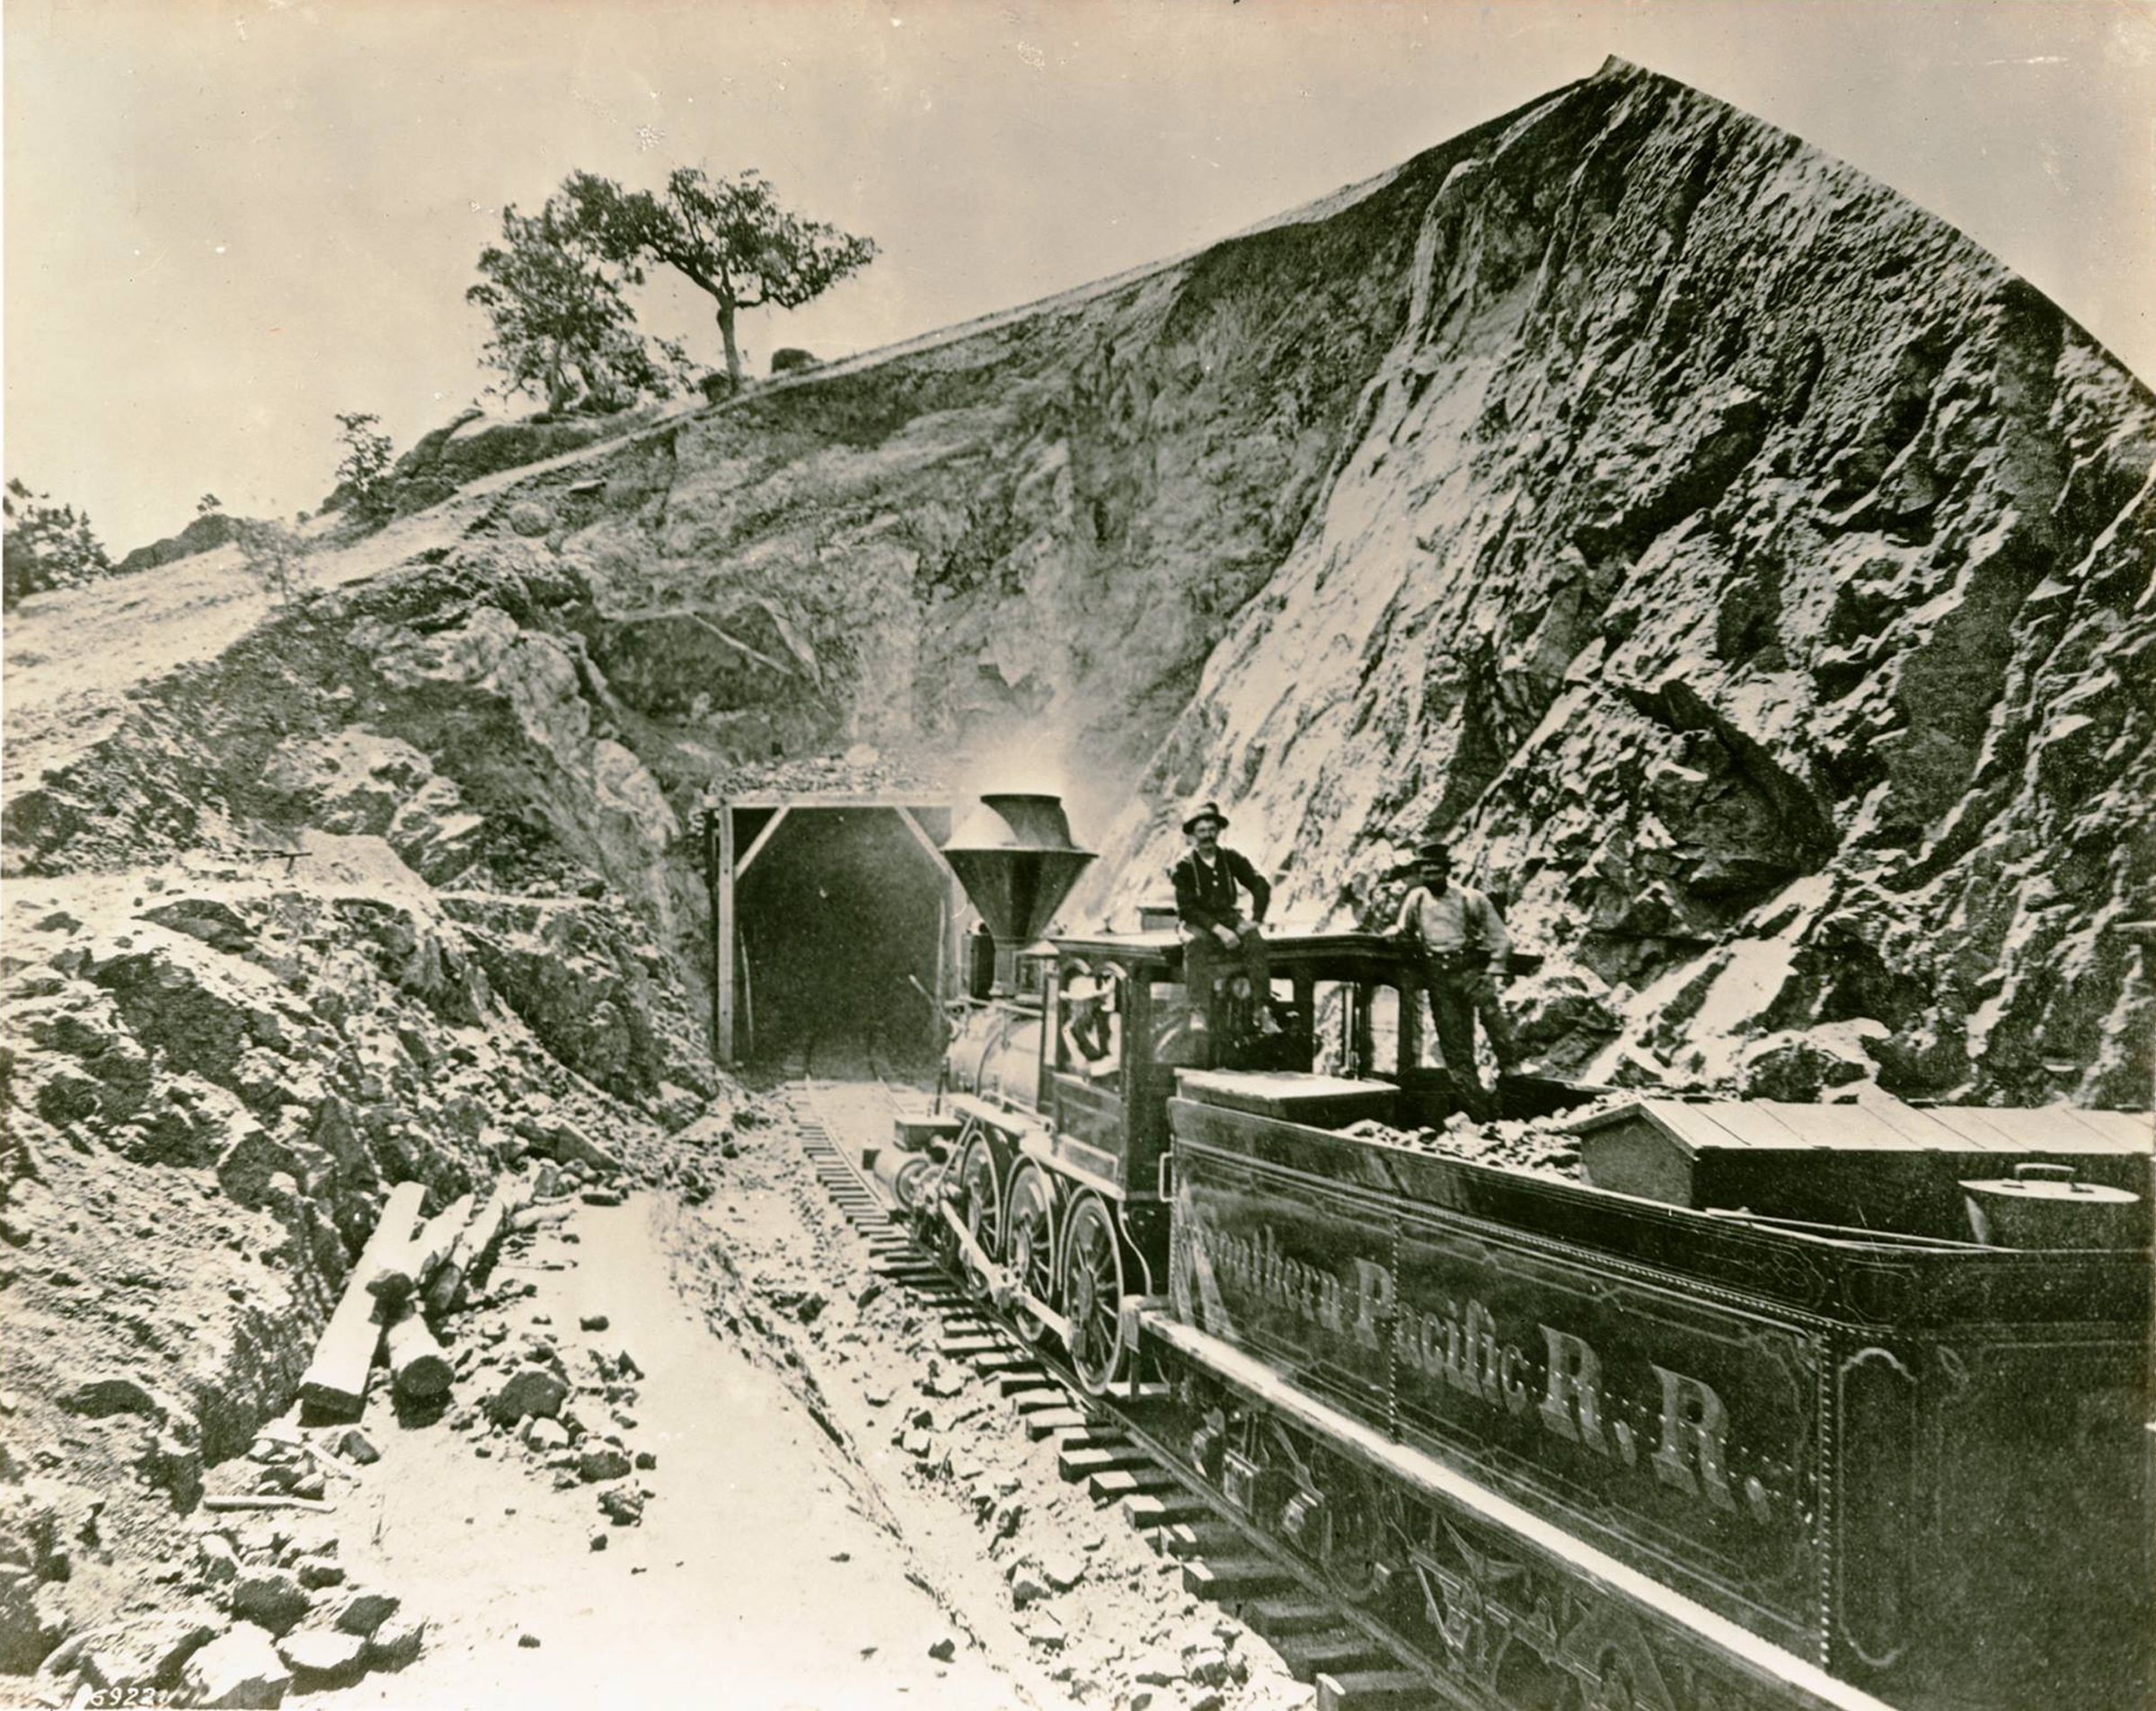 research paper underground railroad Get an answer for 'what are some topics that i might research about the underground railroad' and find homework help for other history questions at enotes.